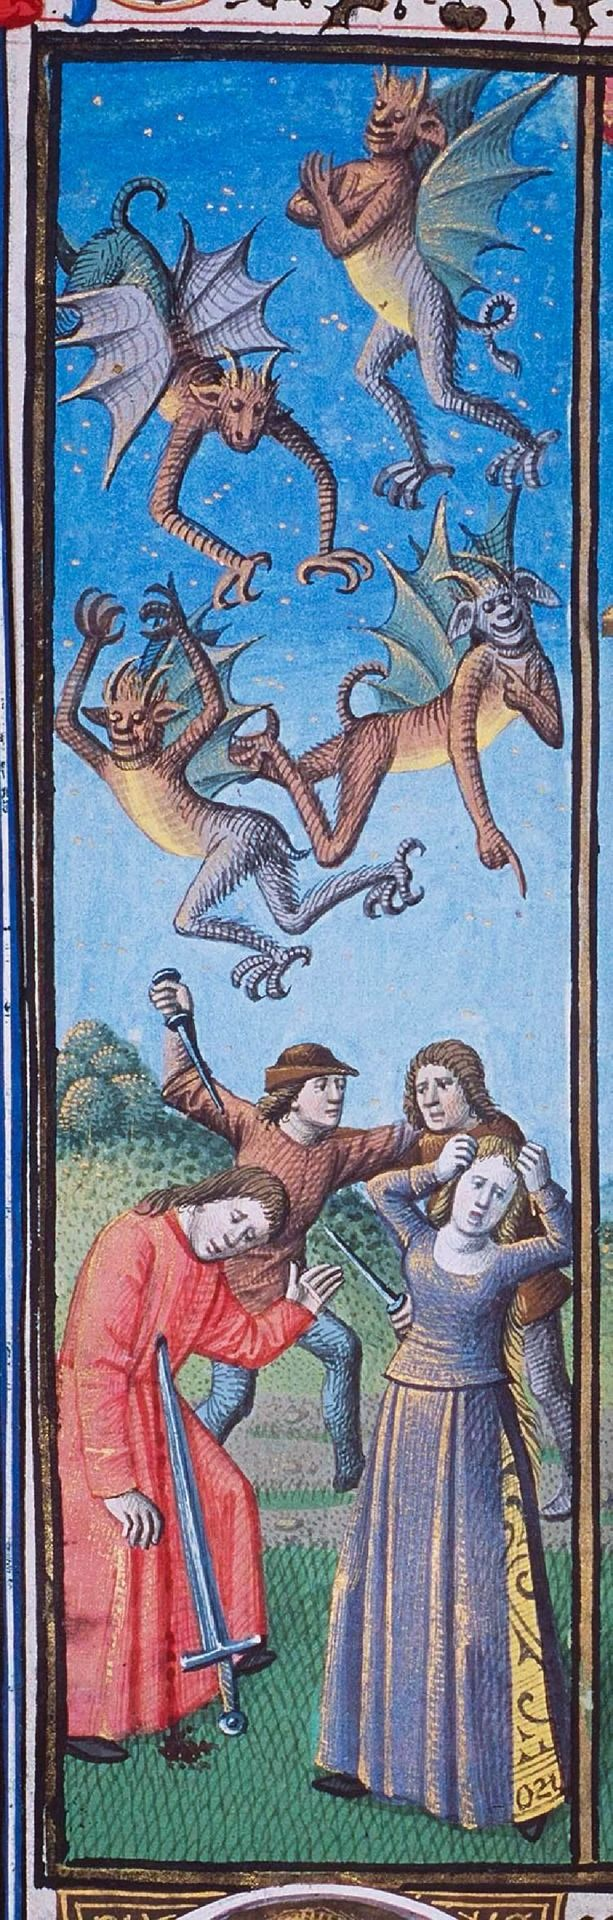 Demons rejoice in the misfortune of mankind, c.1475, The Hague, MMW, 10 A 11. 401v